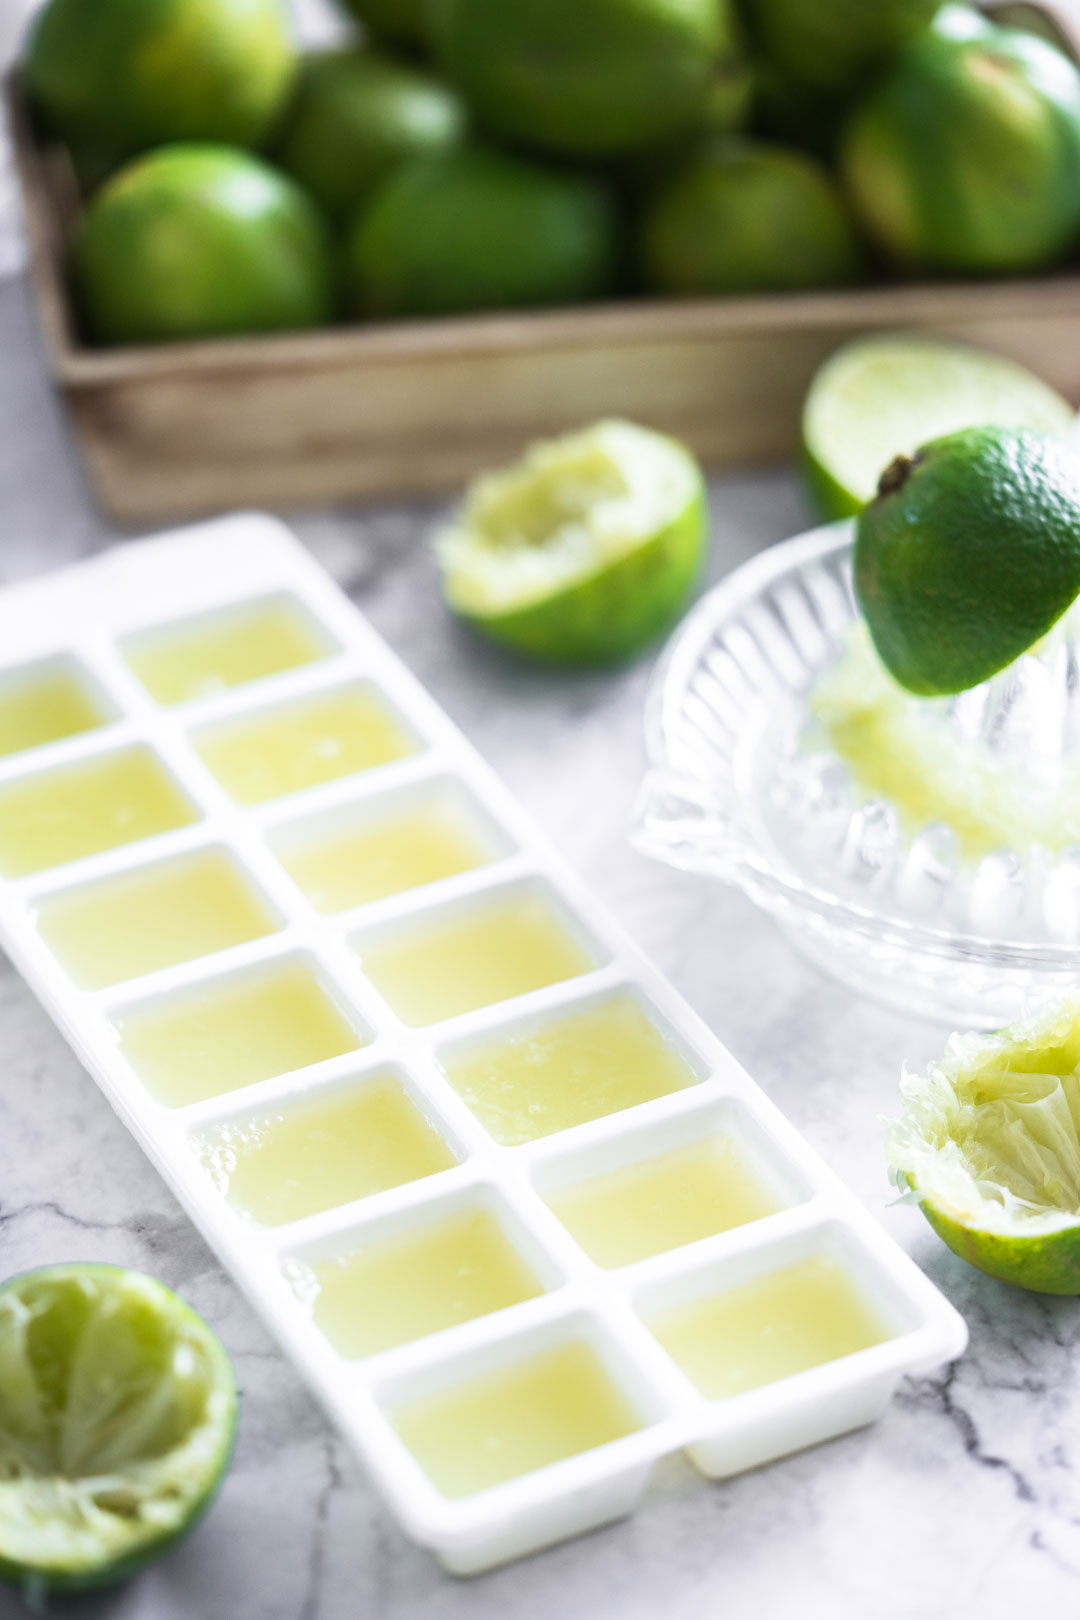 lime juice in an ice cube tray